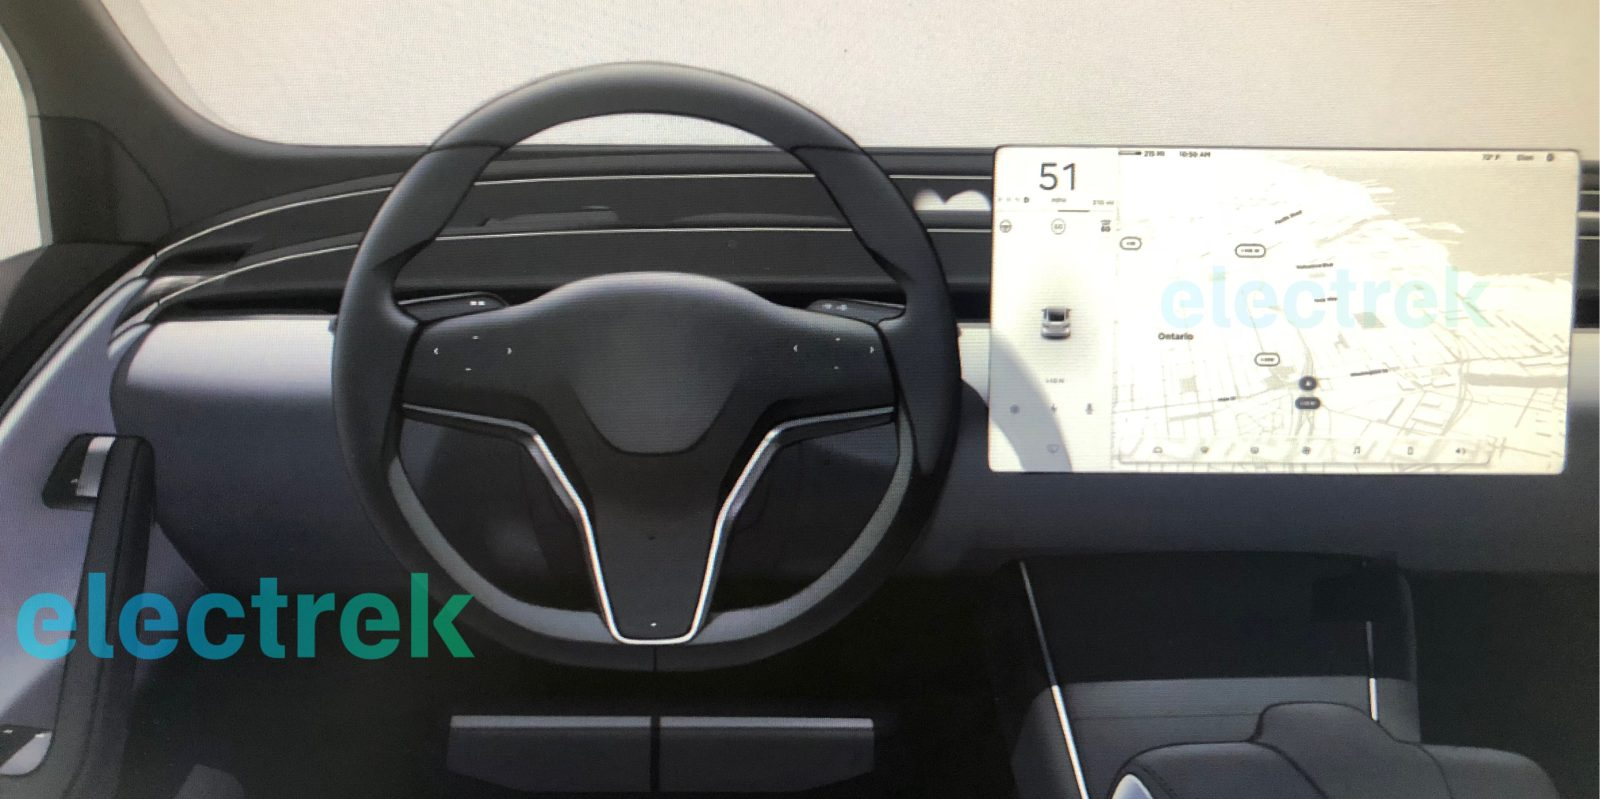 Exclusive First Look At Tesla Model Odel X Interior Refresh Going Spartan Like 3